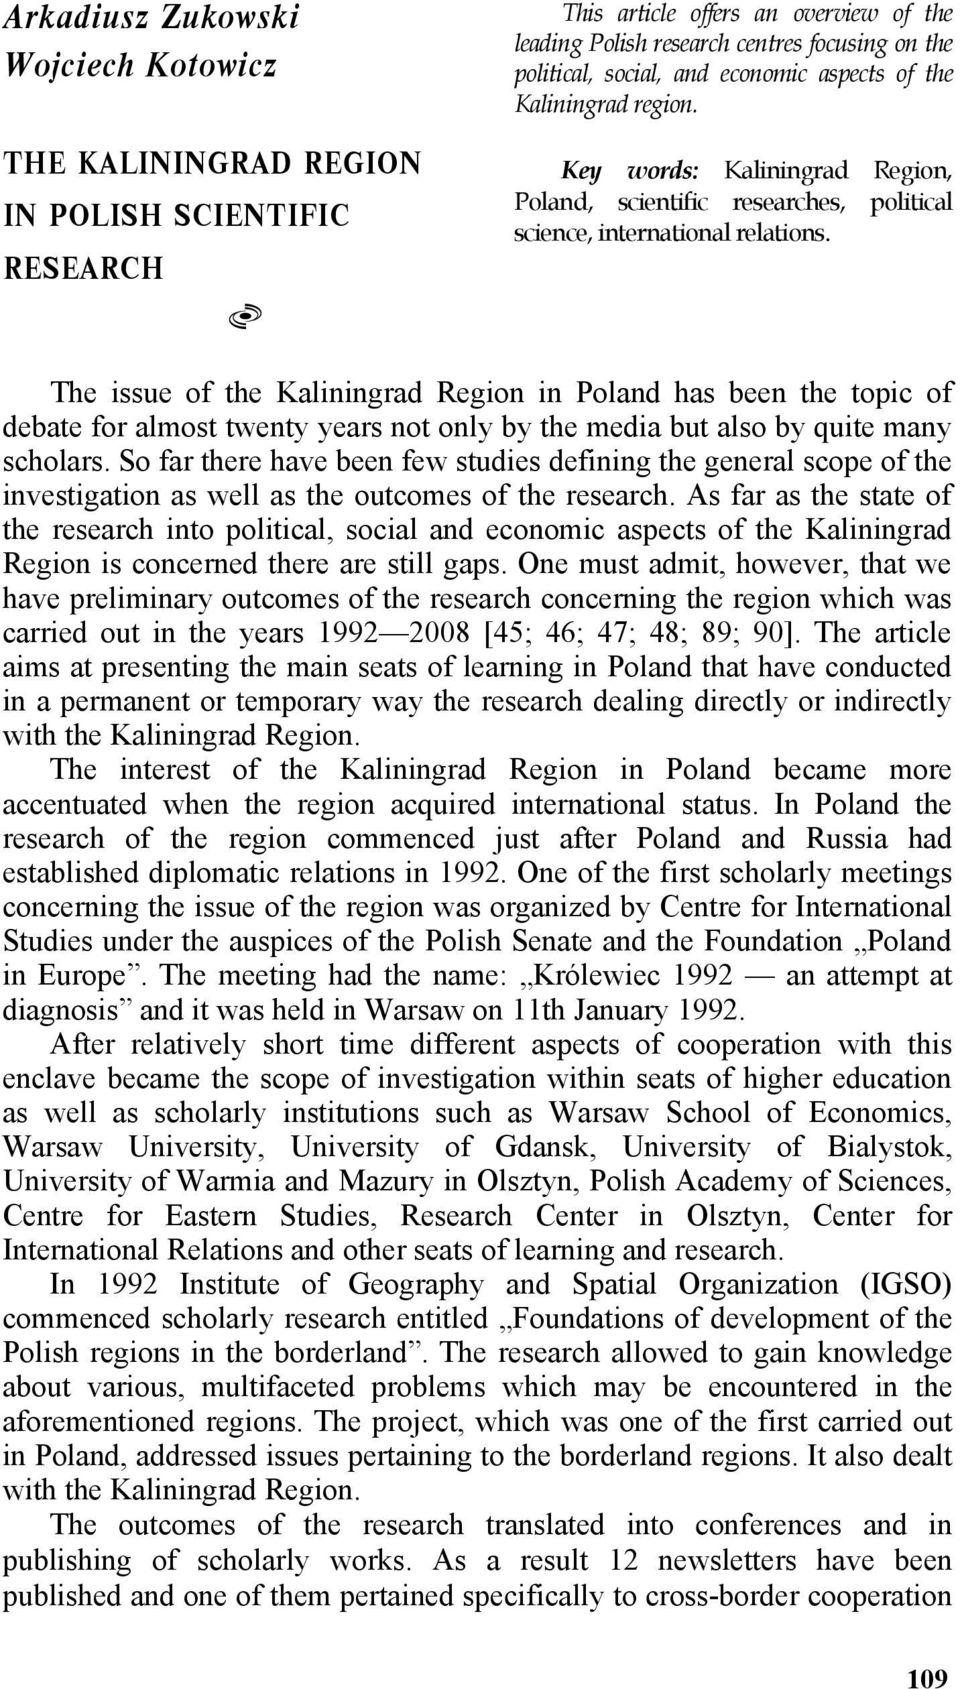 social, and economic aspects of the Kaliningrad region. Key words: Kaliningrad Region, Poland, scientific researches, political science, international relations.